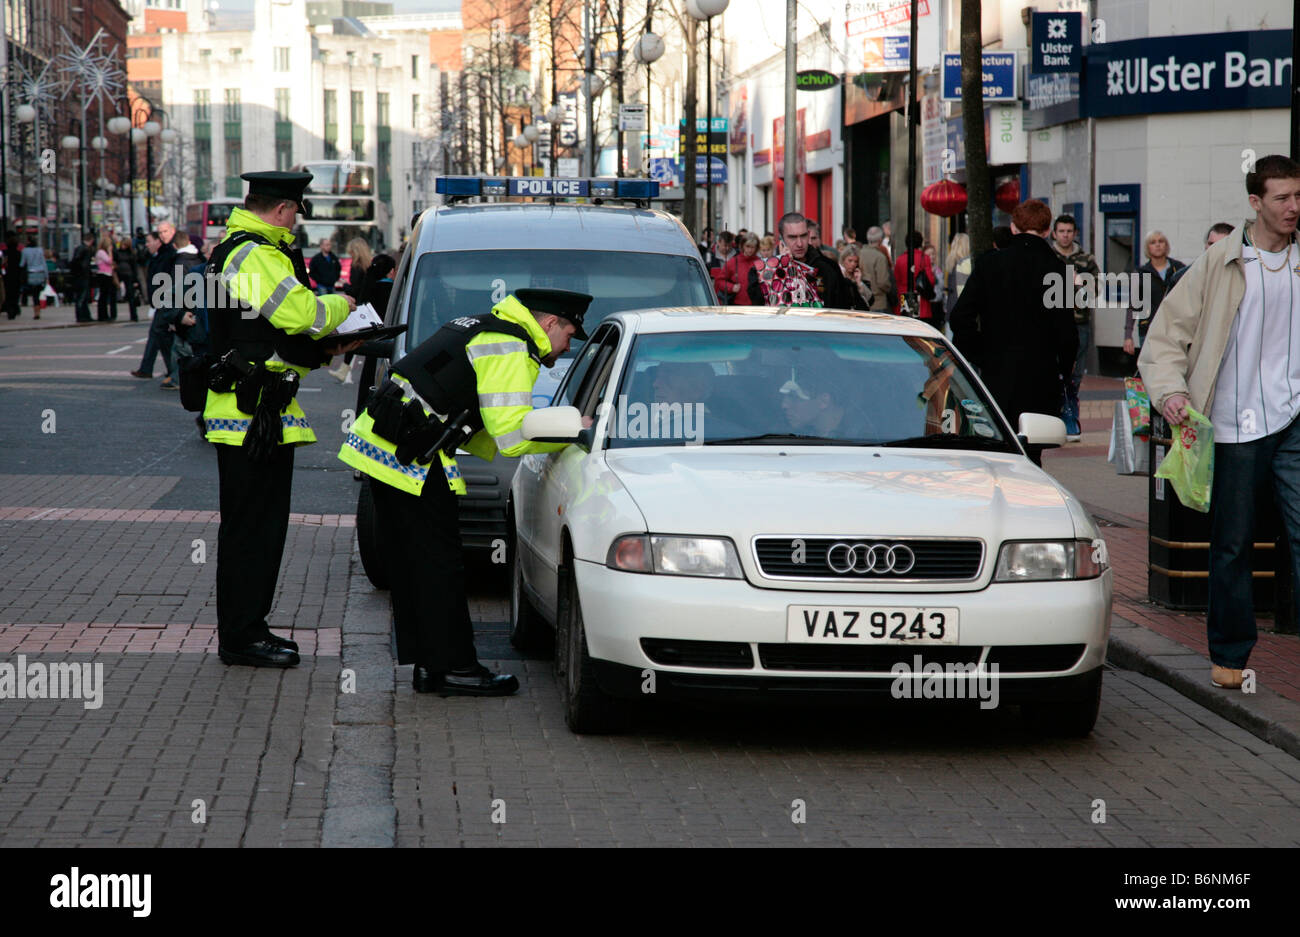 police question a driver of an audi car in a routine check in a pedestrian area of belfast city centre uk - Stock Image